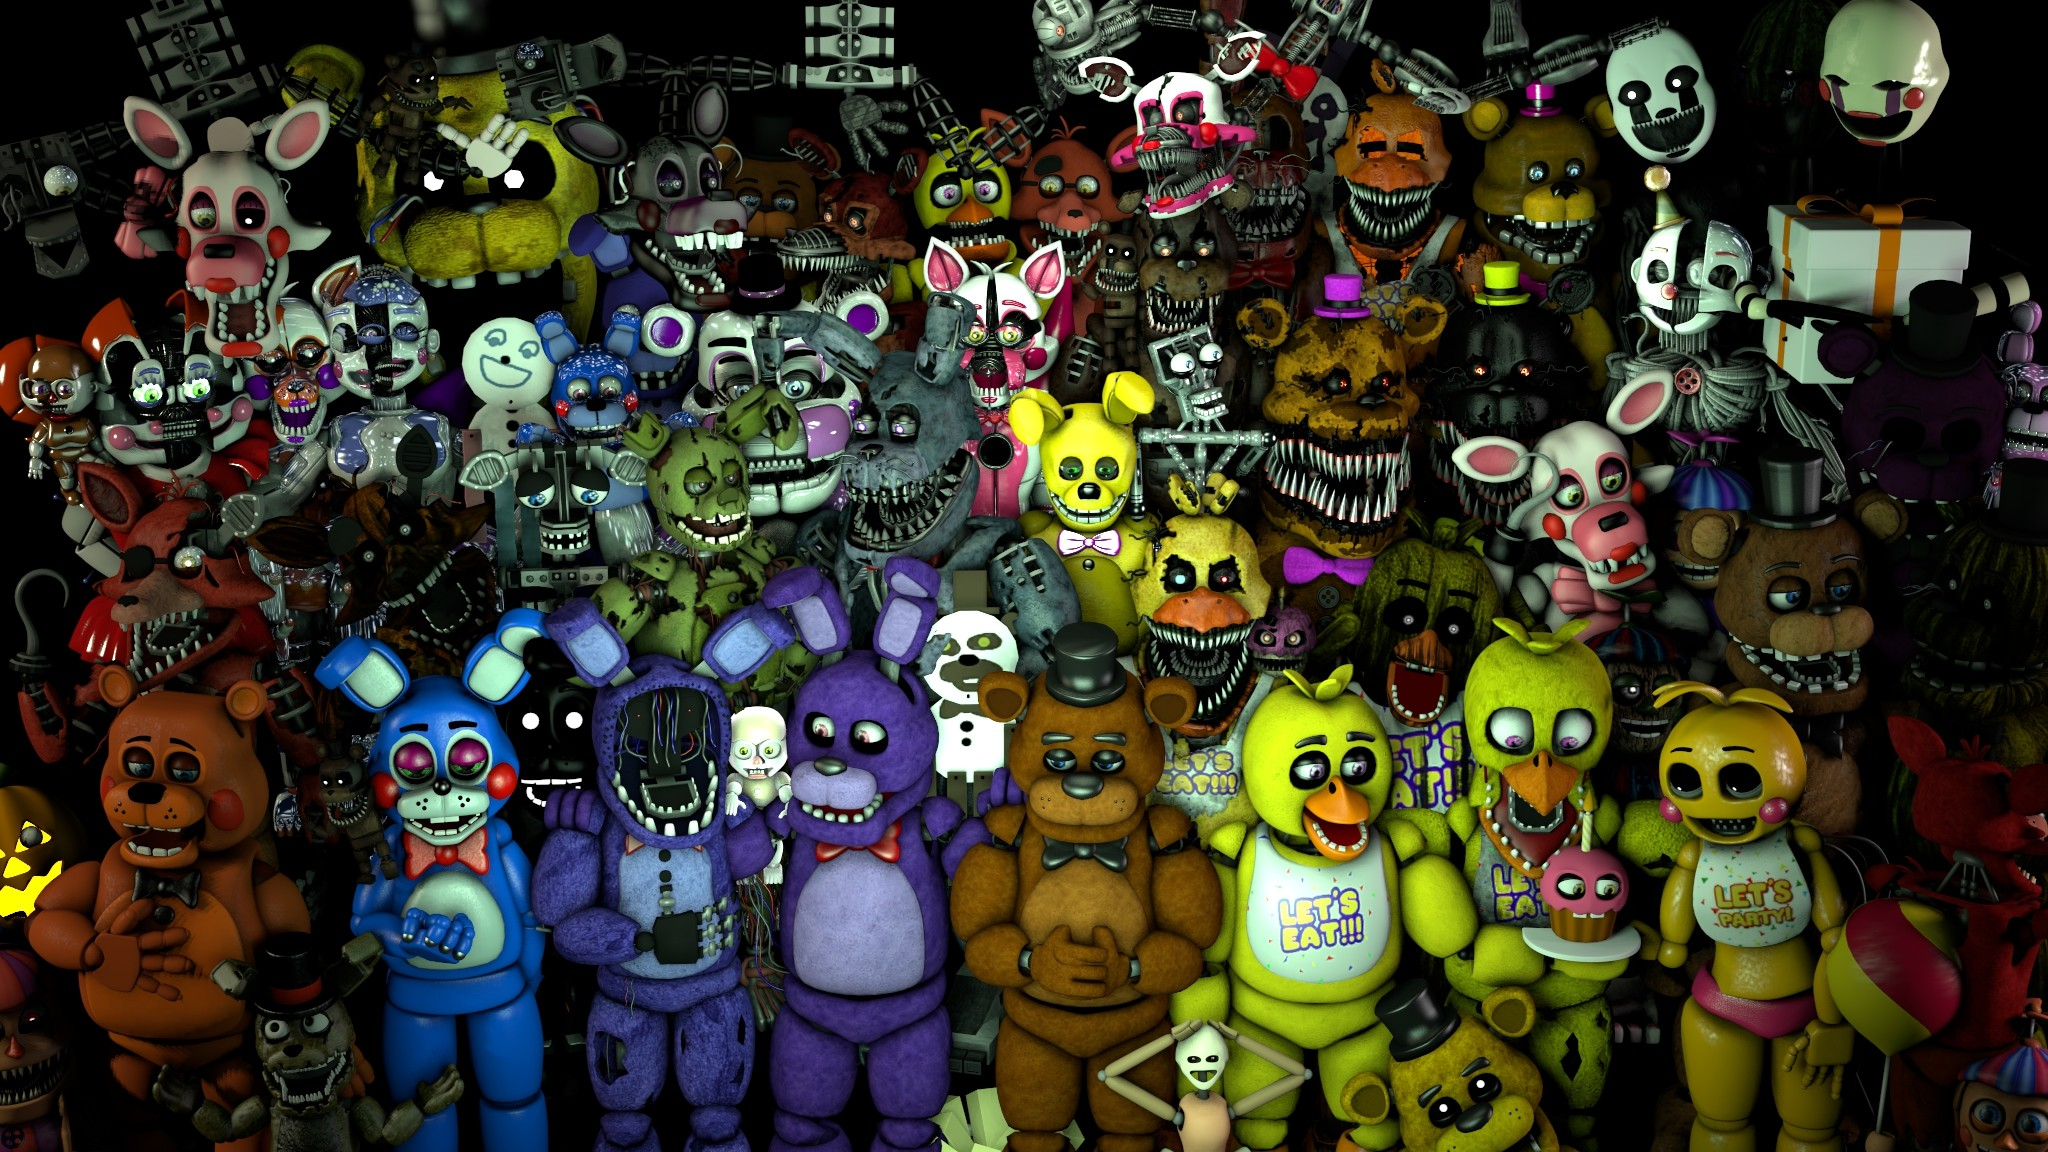 FNaF Mega Poster 2.0 by PixelKirby340 FNaF Mega Poster 2.0 by PixelKirby340